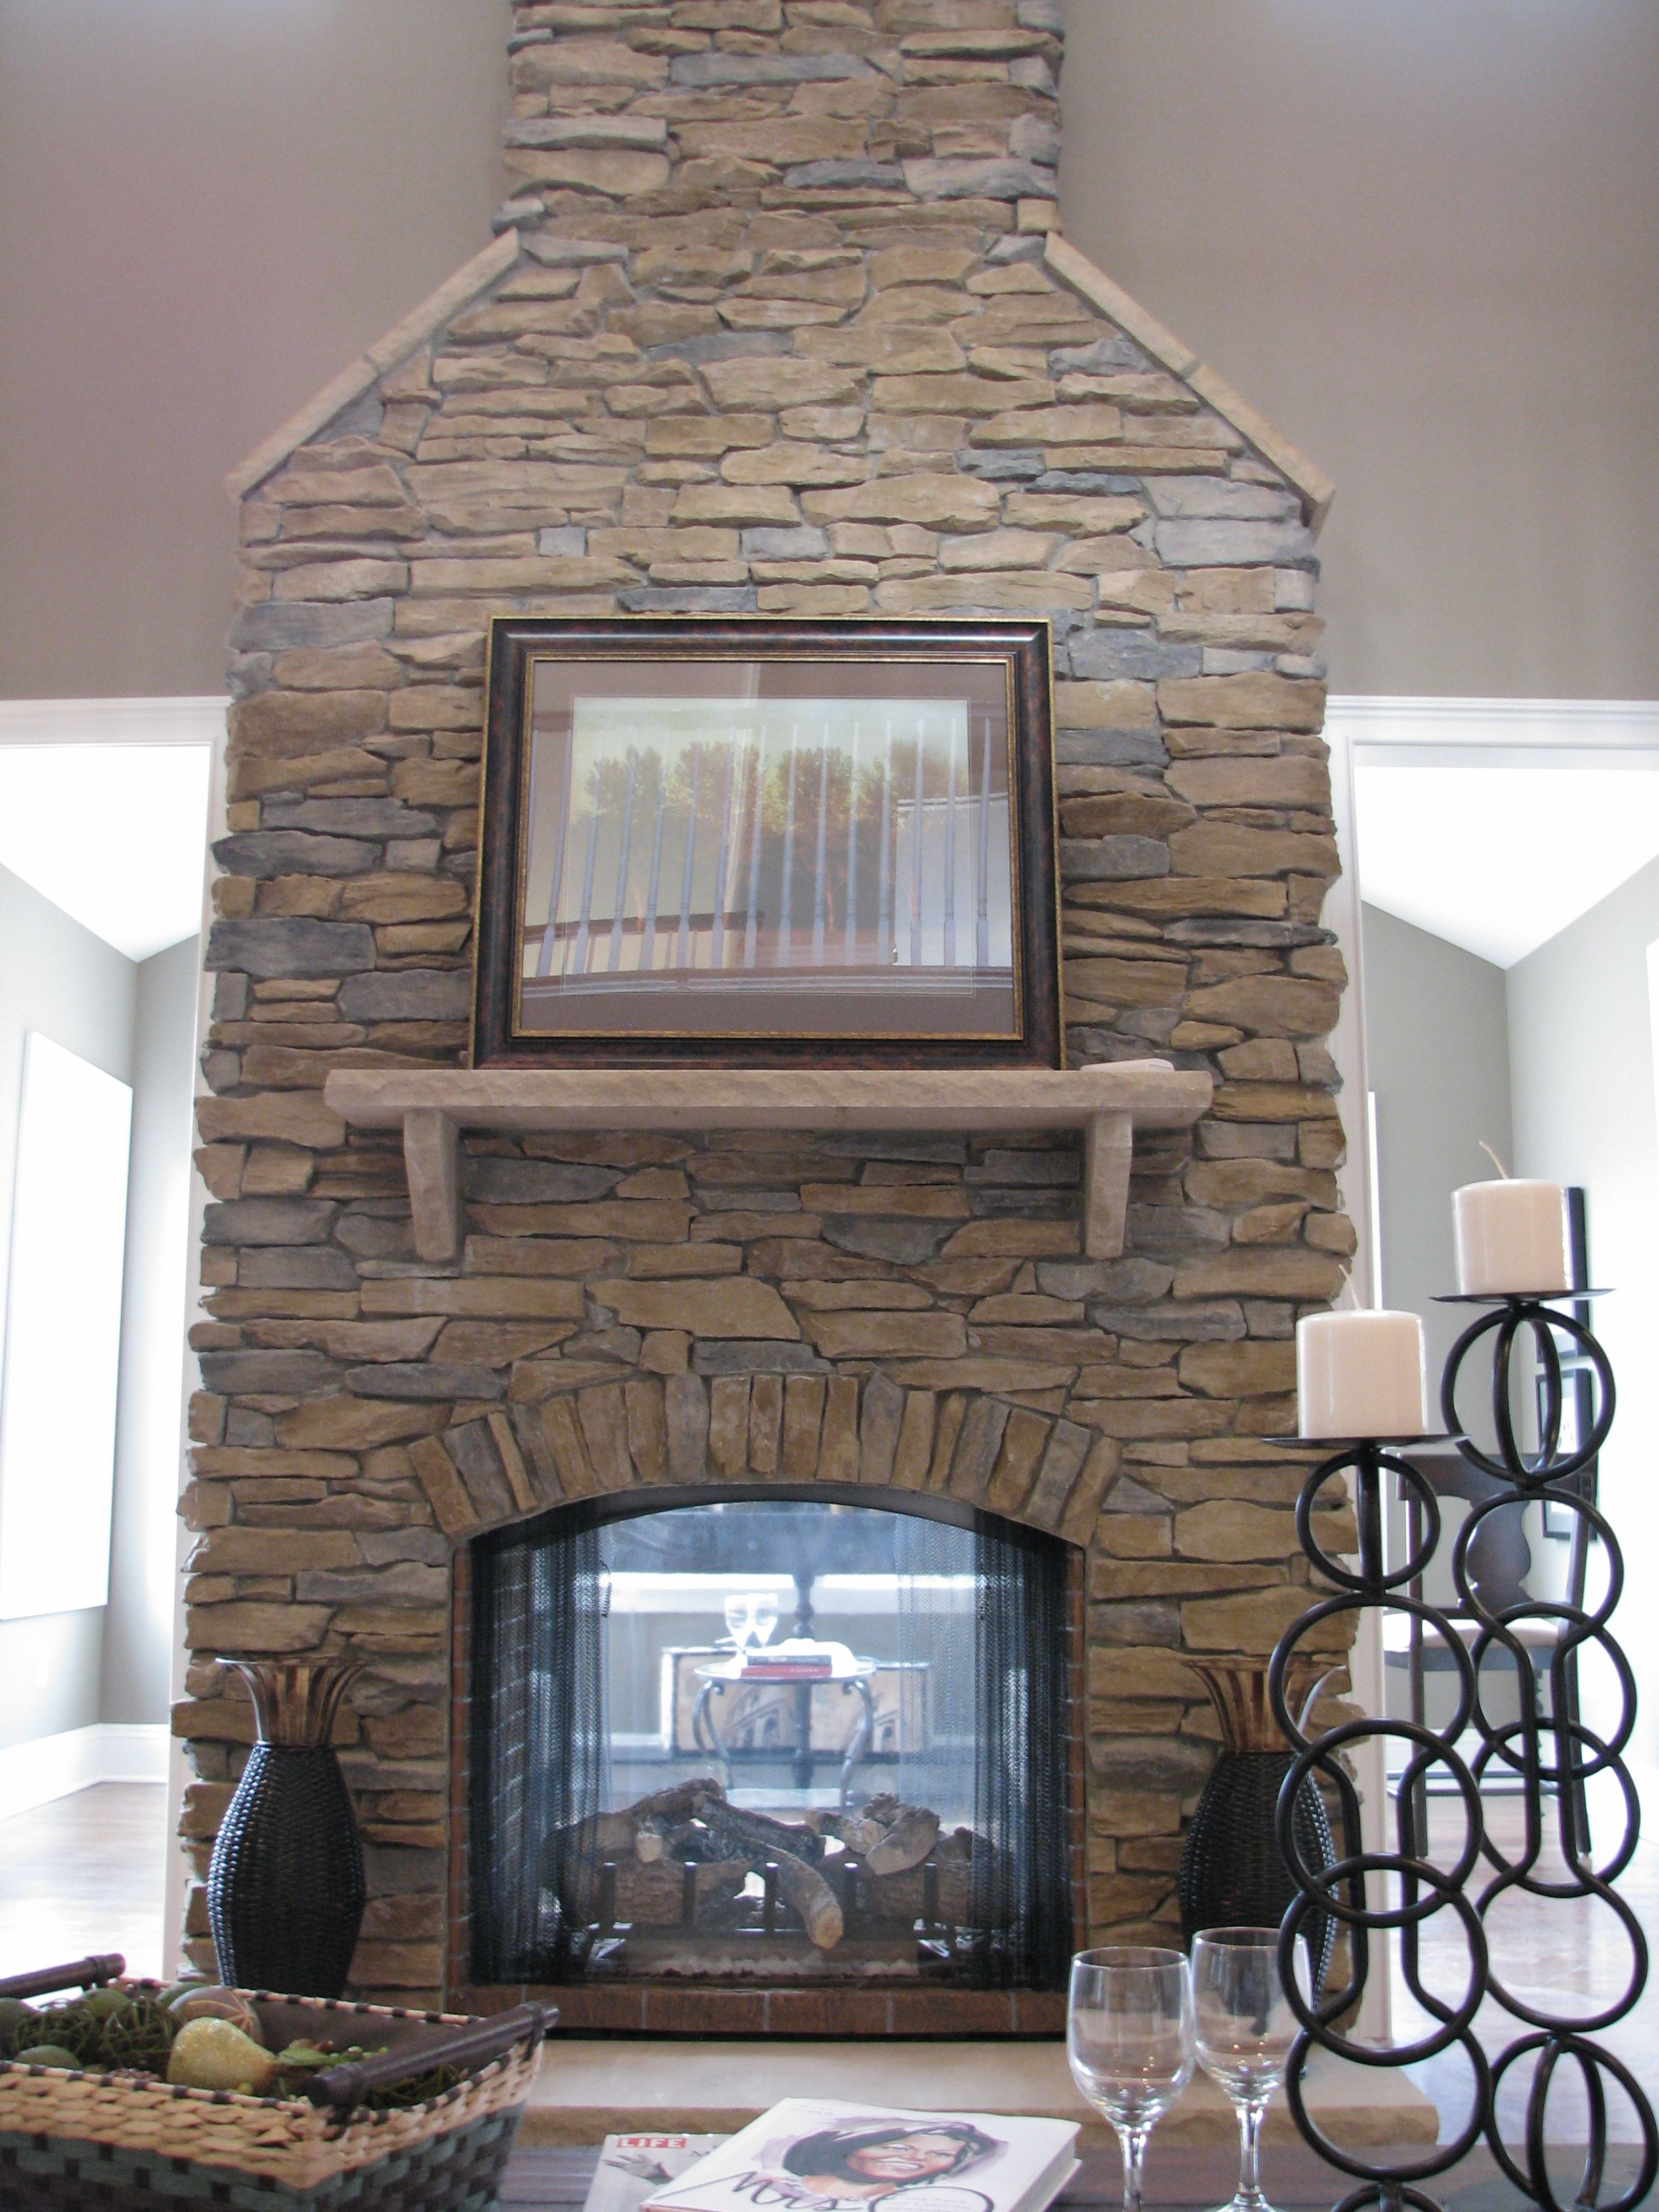 exactly what i want floor to ceiling stone fireplace with see